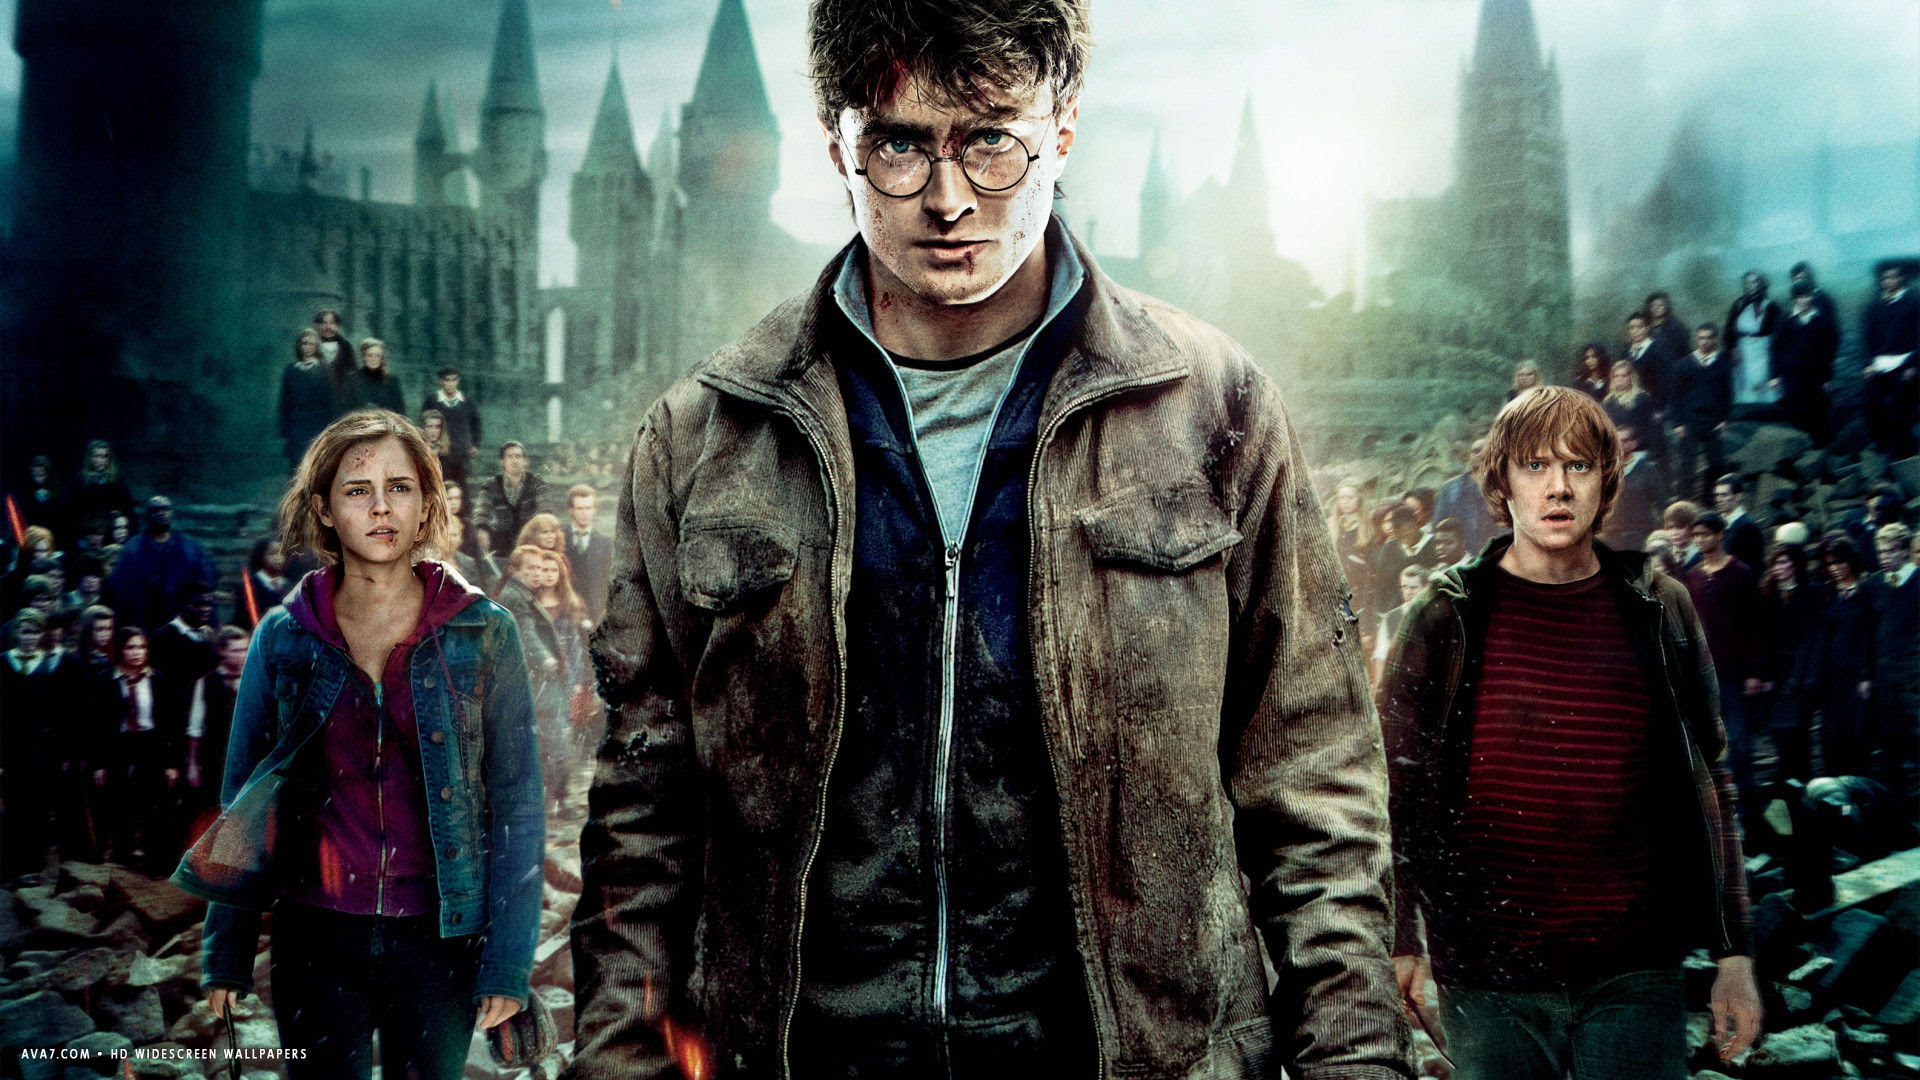 Harry Potter And The Deathly Hallows Part 2 Movie Hd Widescreen